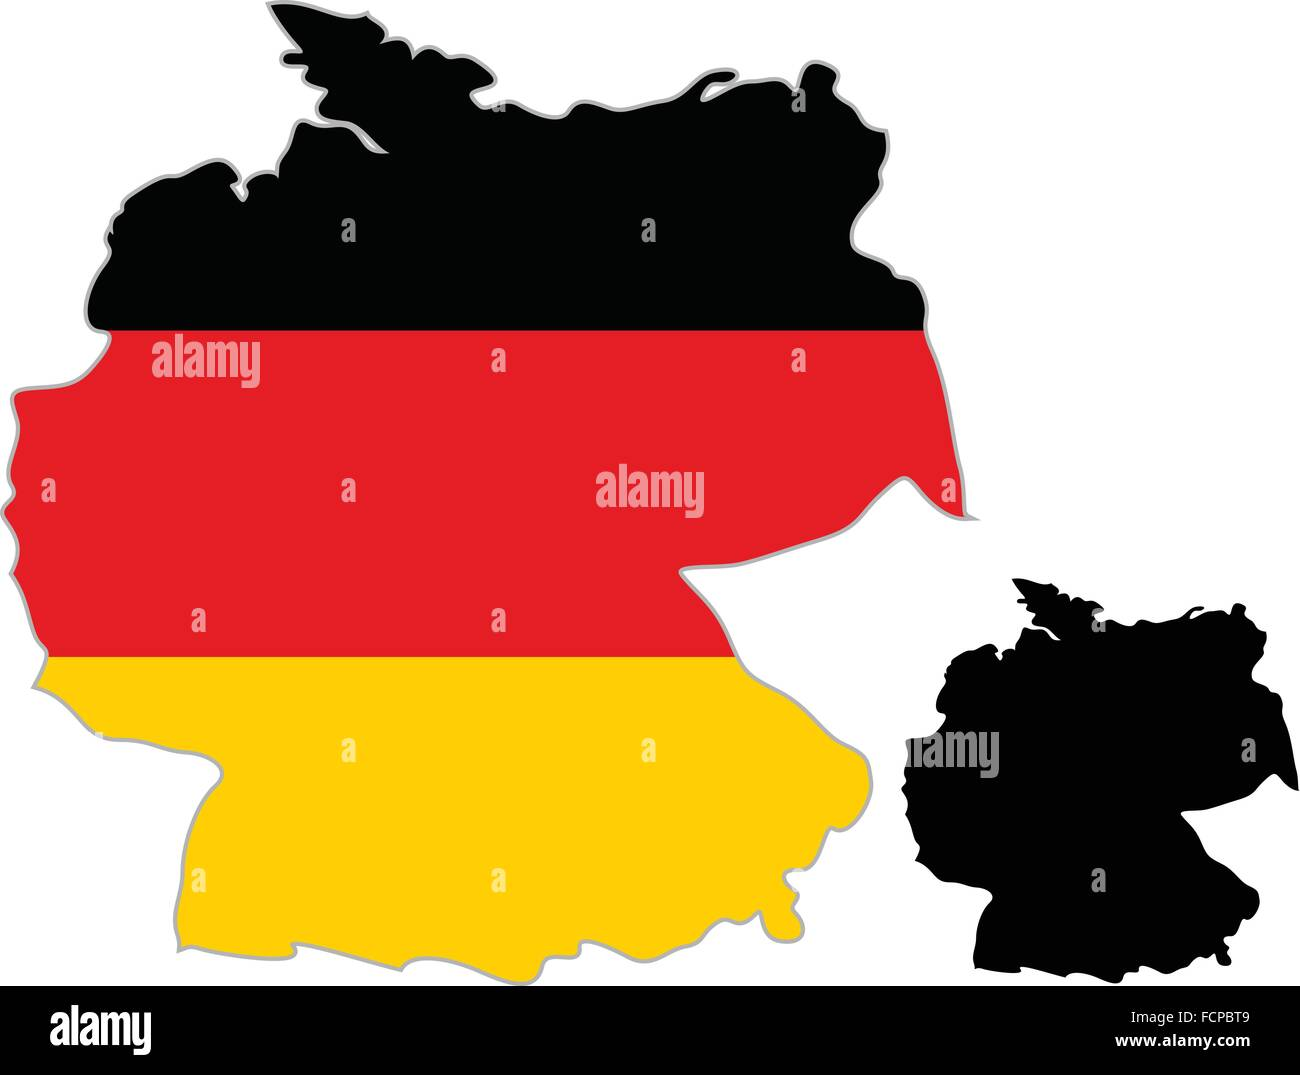 Germany Map Red Outline Symbol Stock Photos Germany Map Red - Germany map outline